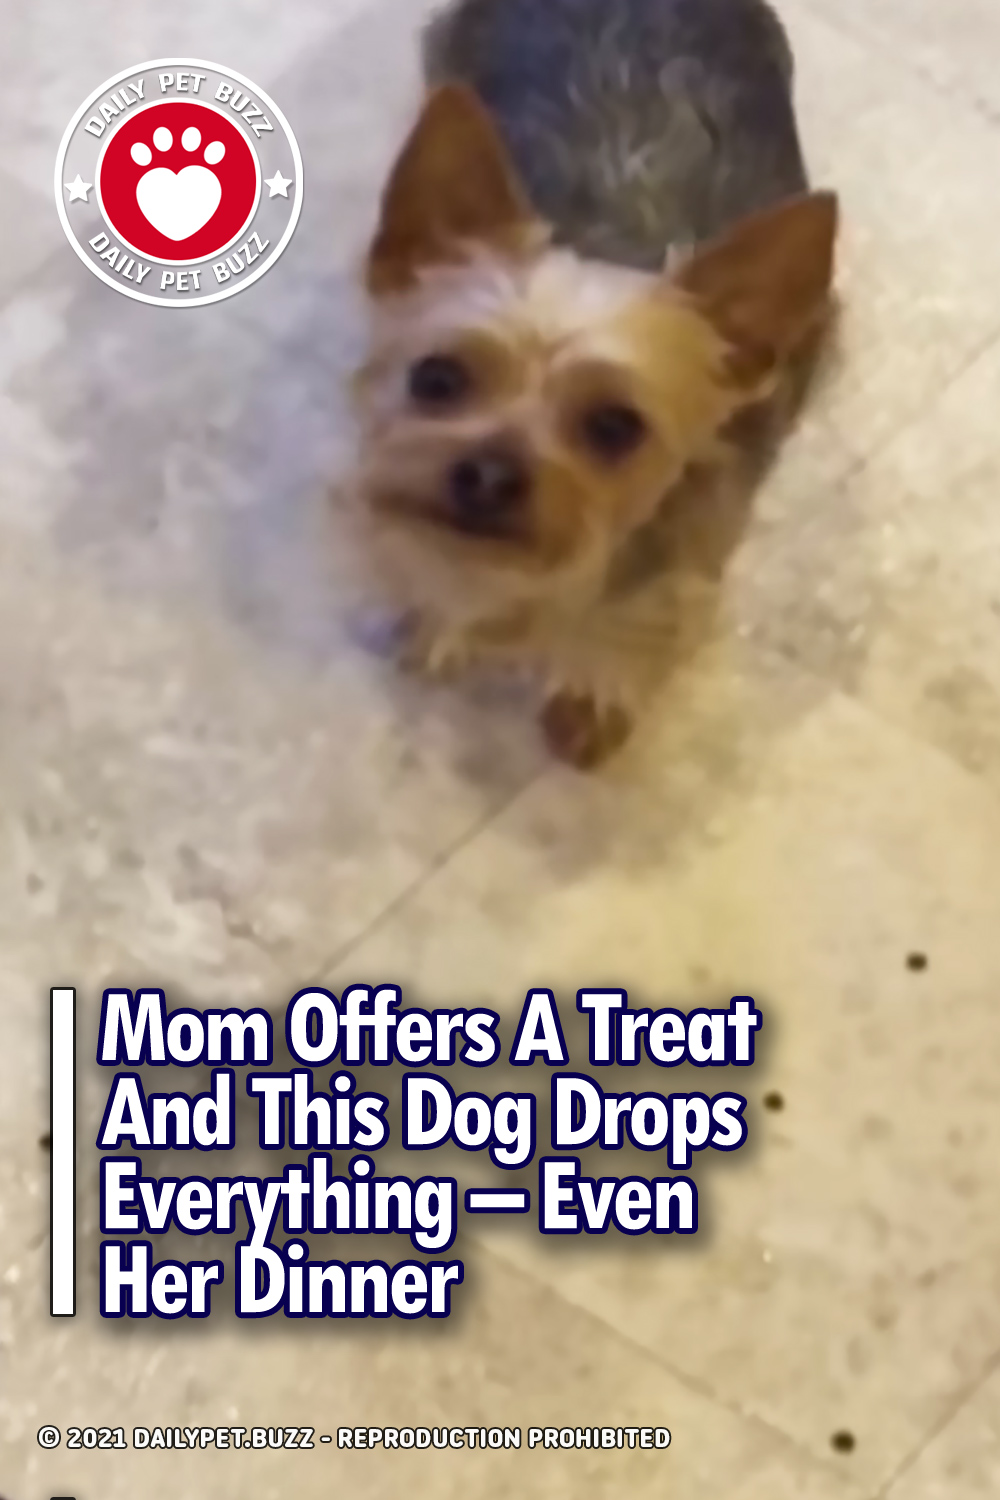 Mom Offers A Treat And This Dog Drops Everything – Even Her Dinner